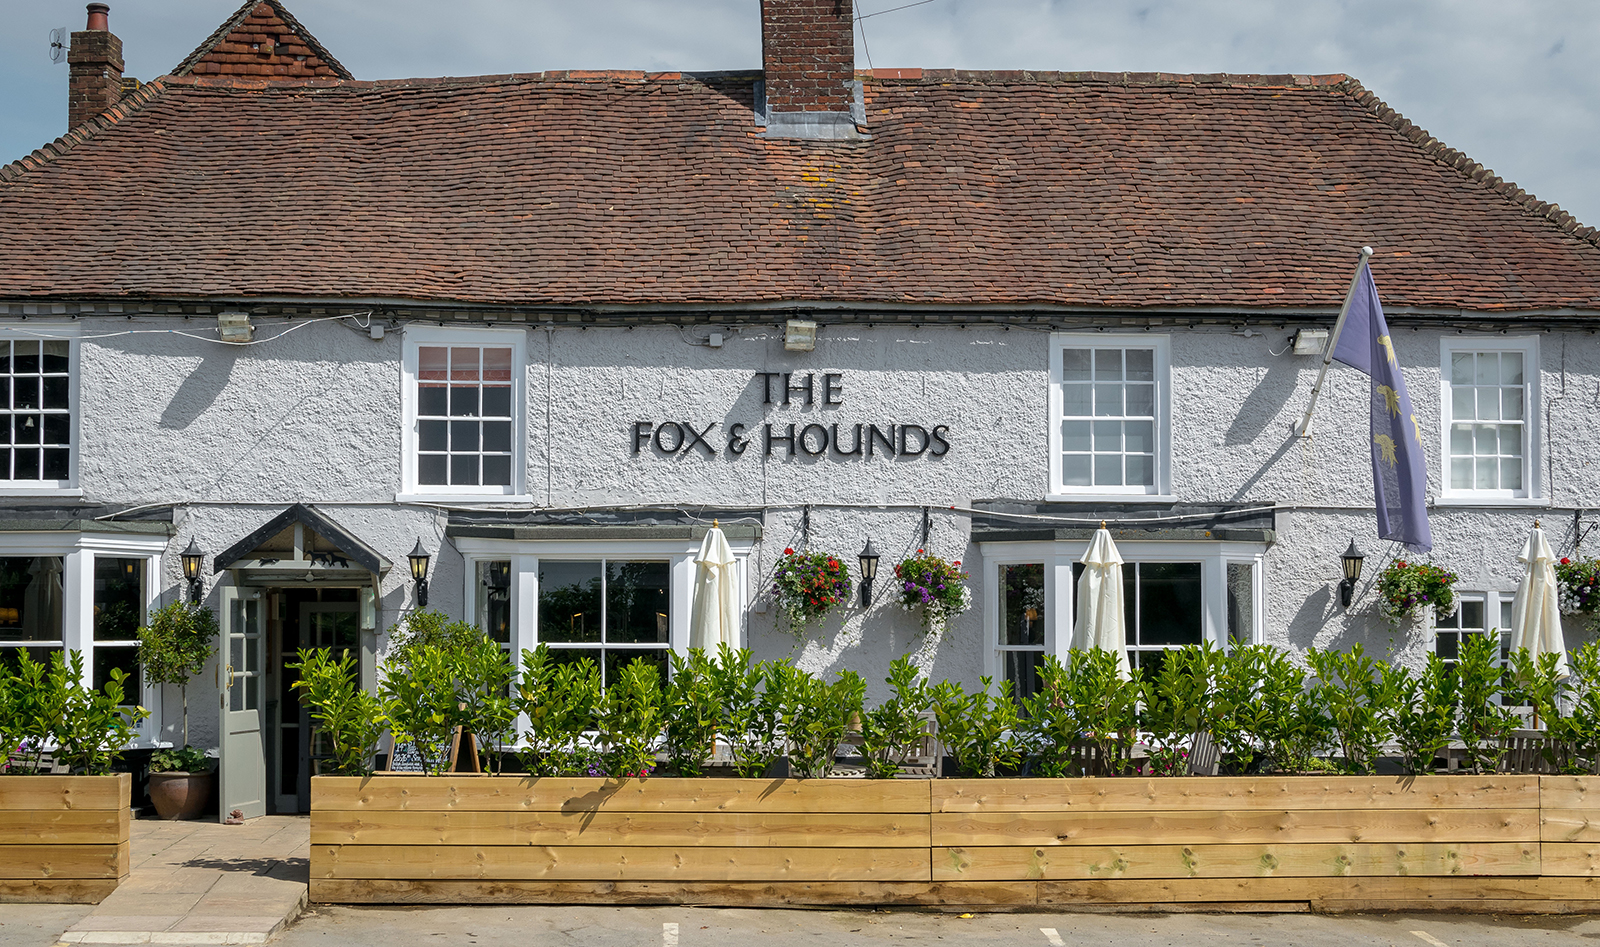 Fox & Hounds Funtington